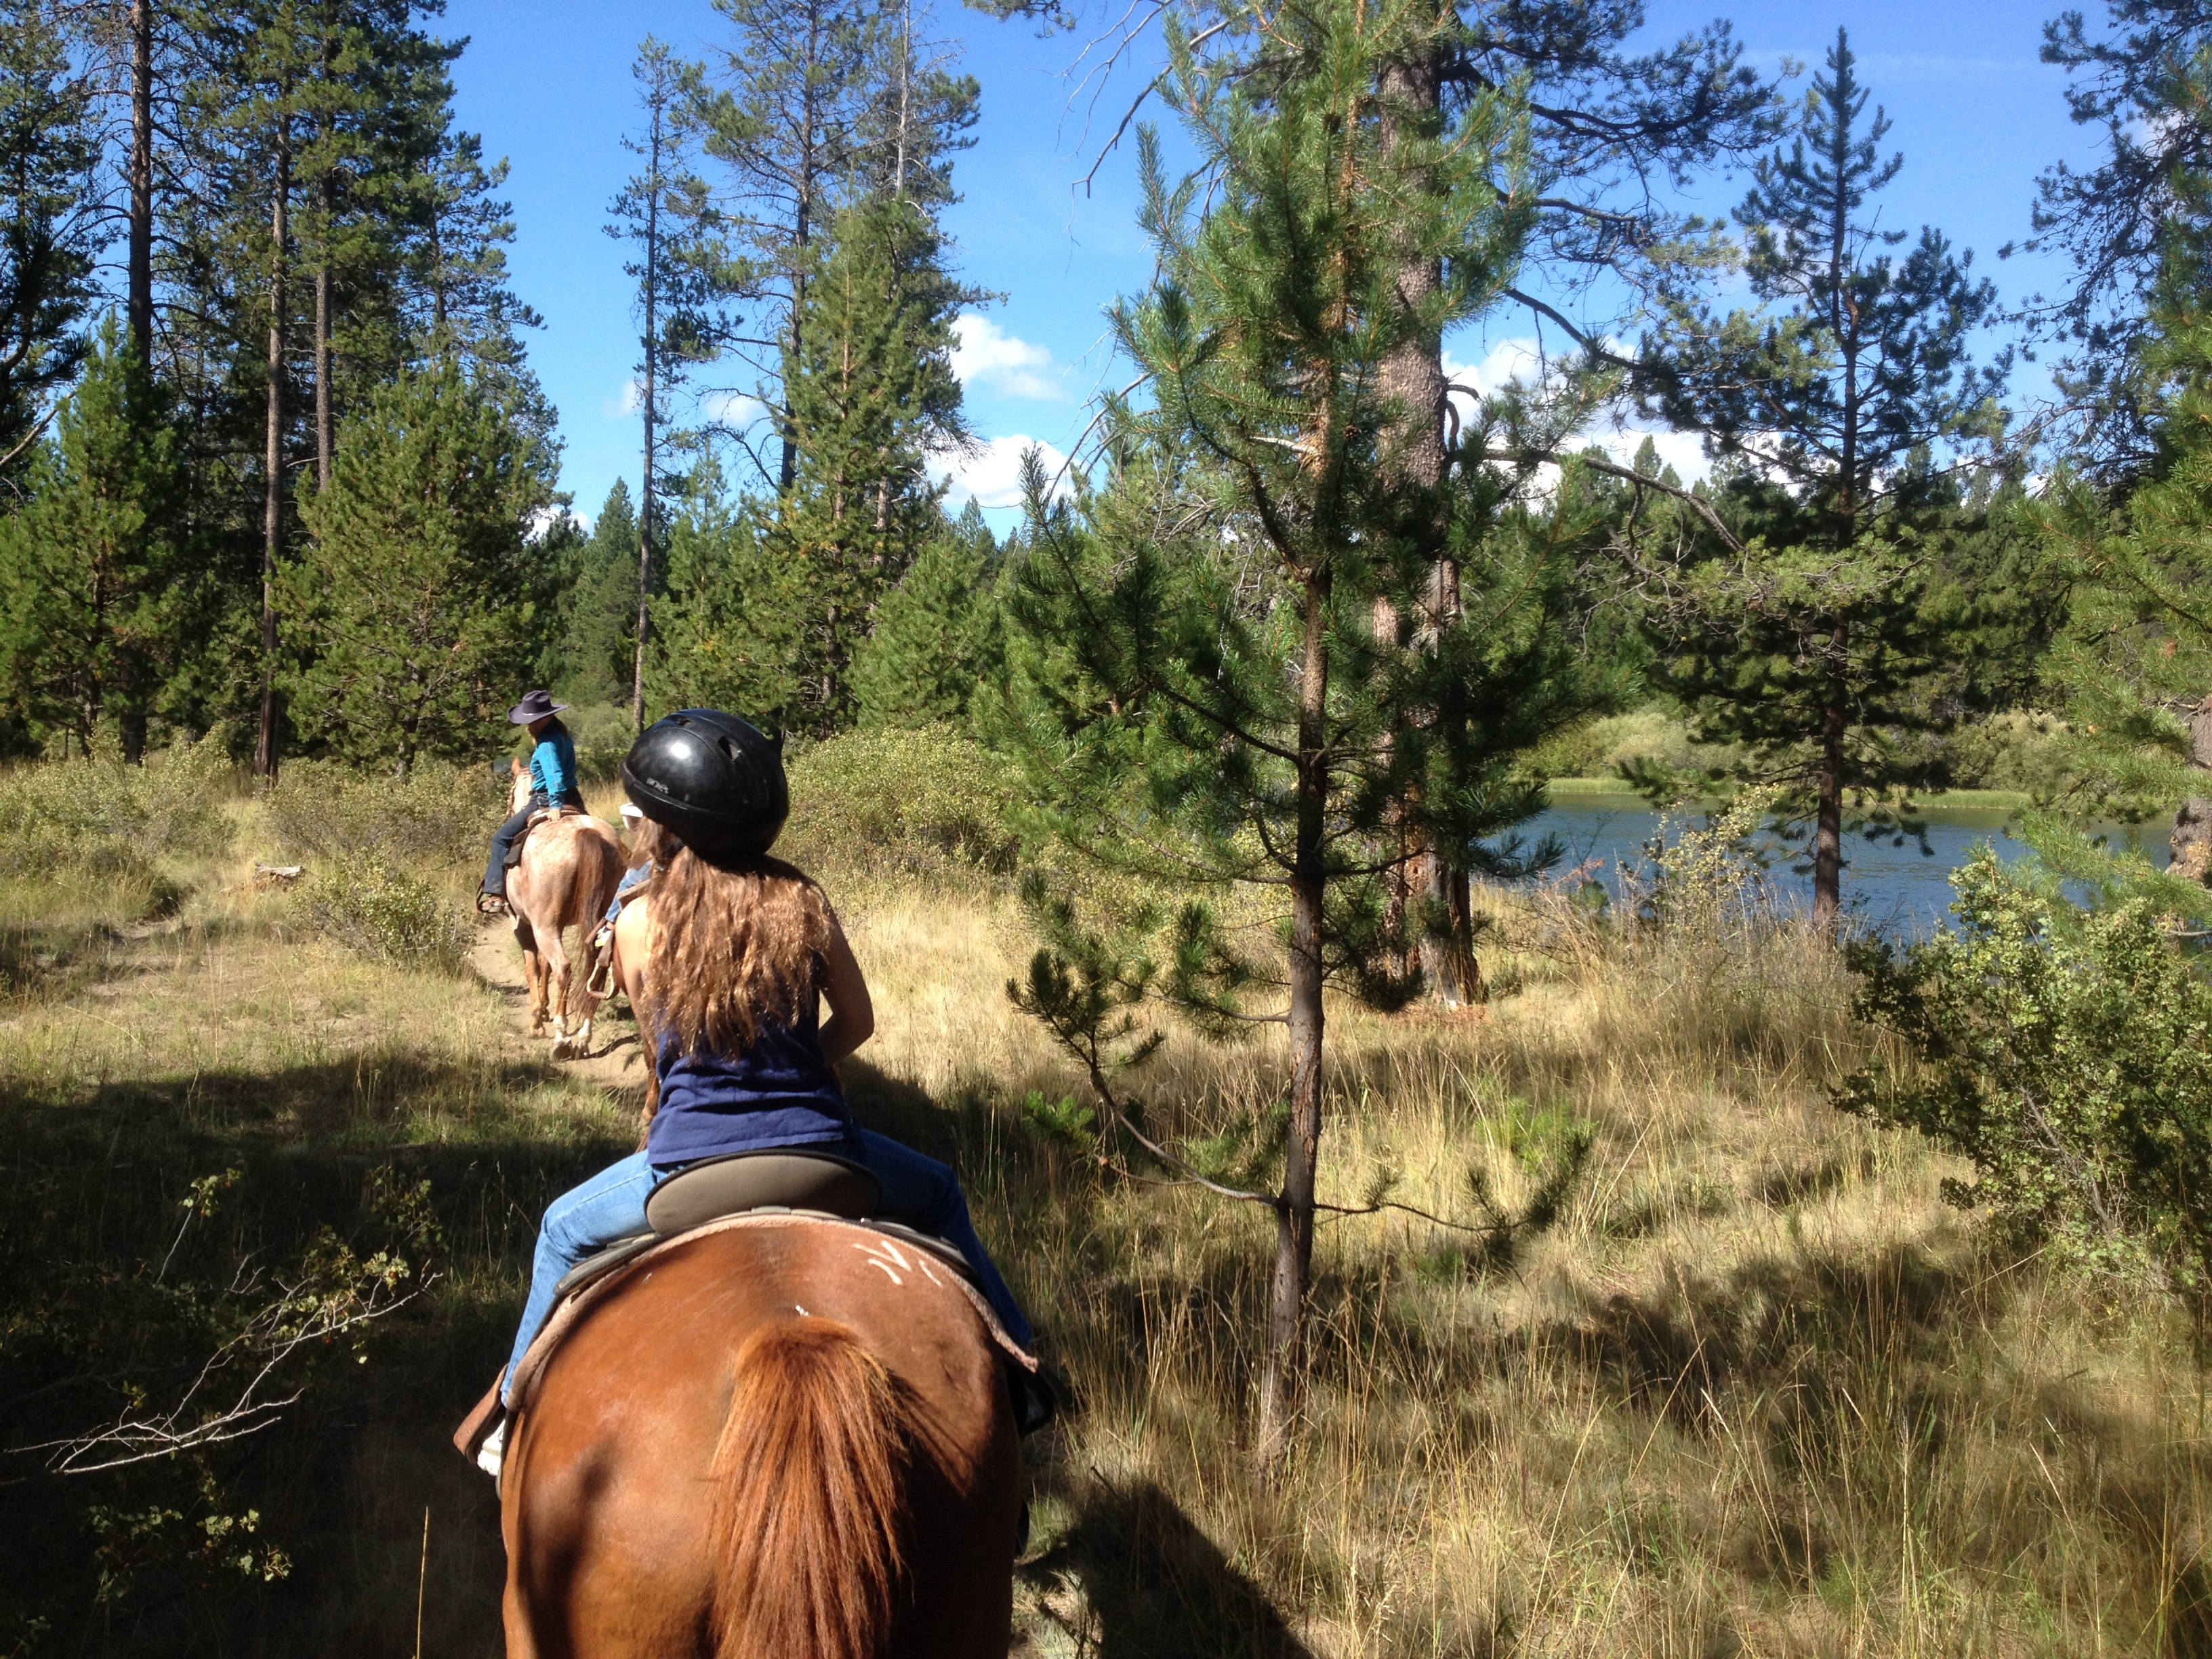 Sunriver, Oregon: An Ideal Weekend Getaway from Portland